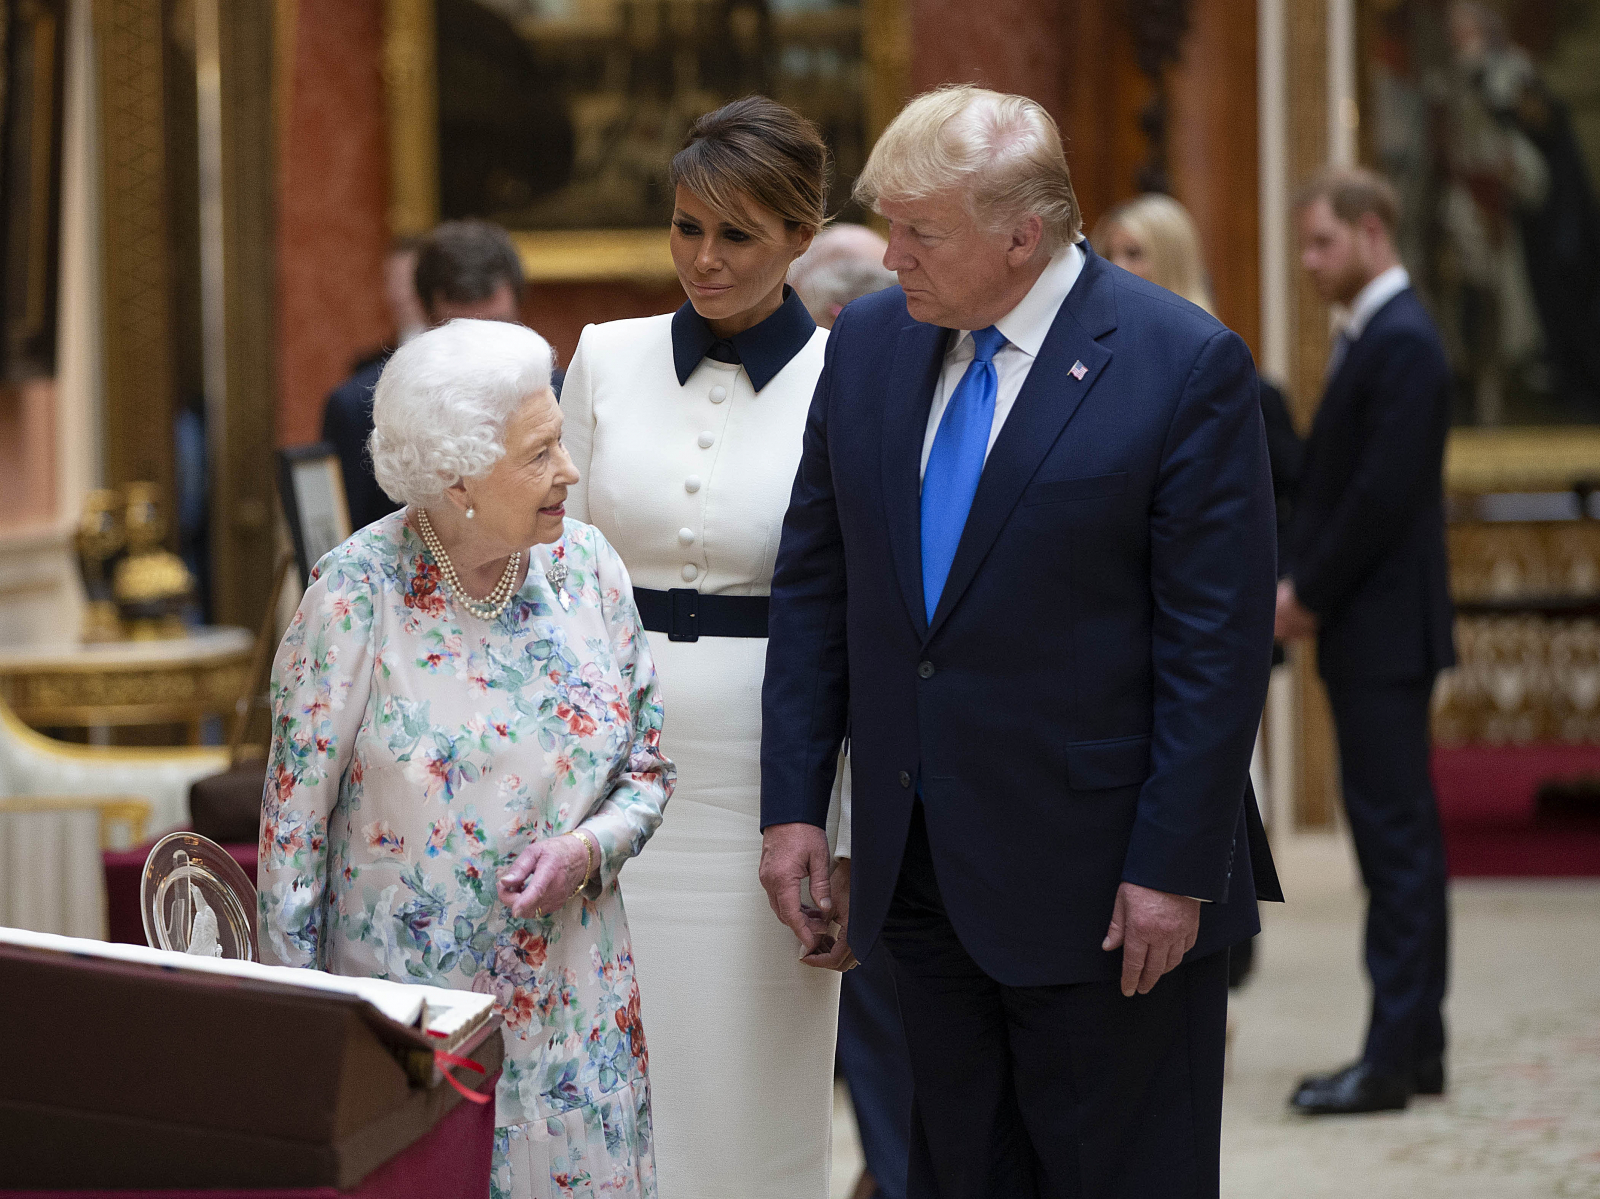 donald-trump-slammed-and-mocked-for-fist-bumping-queen-elizabeth